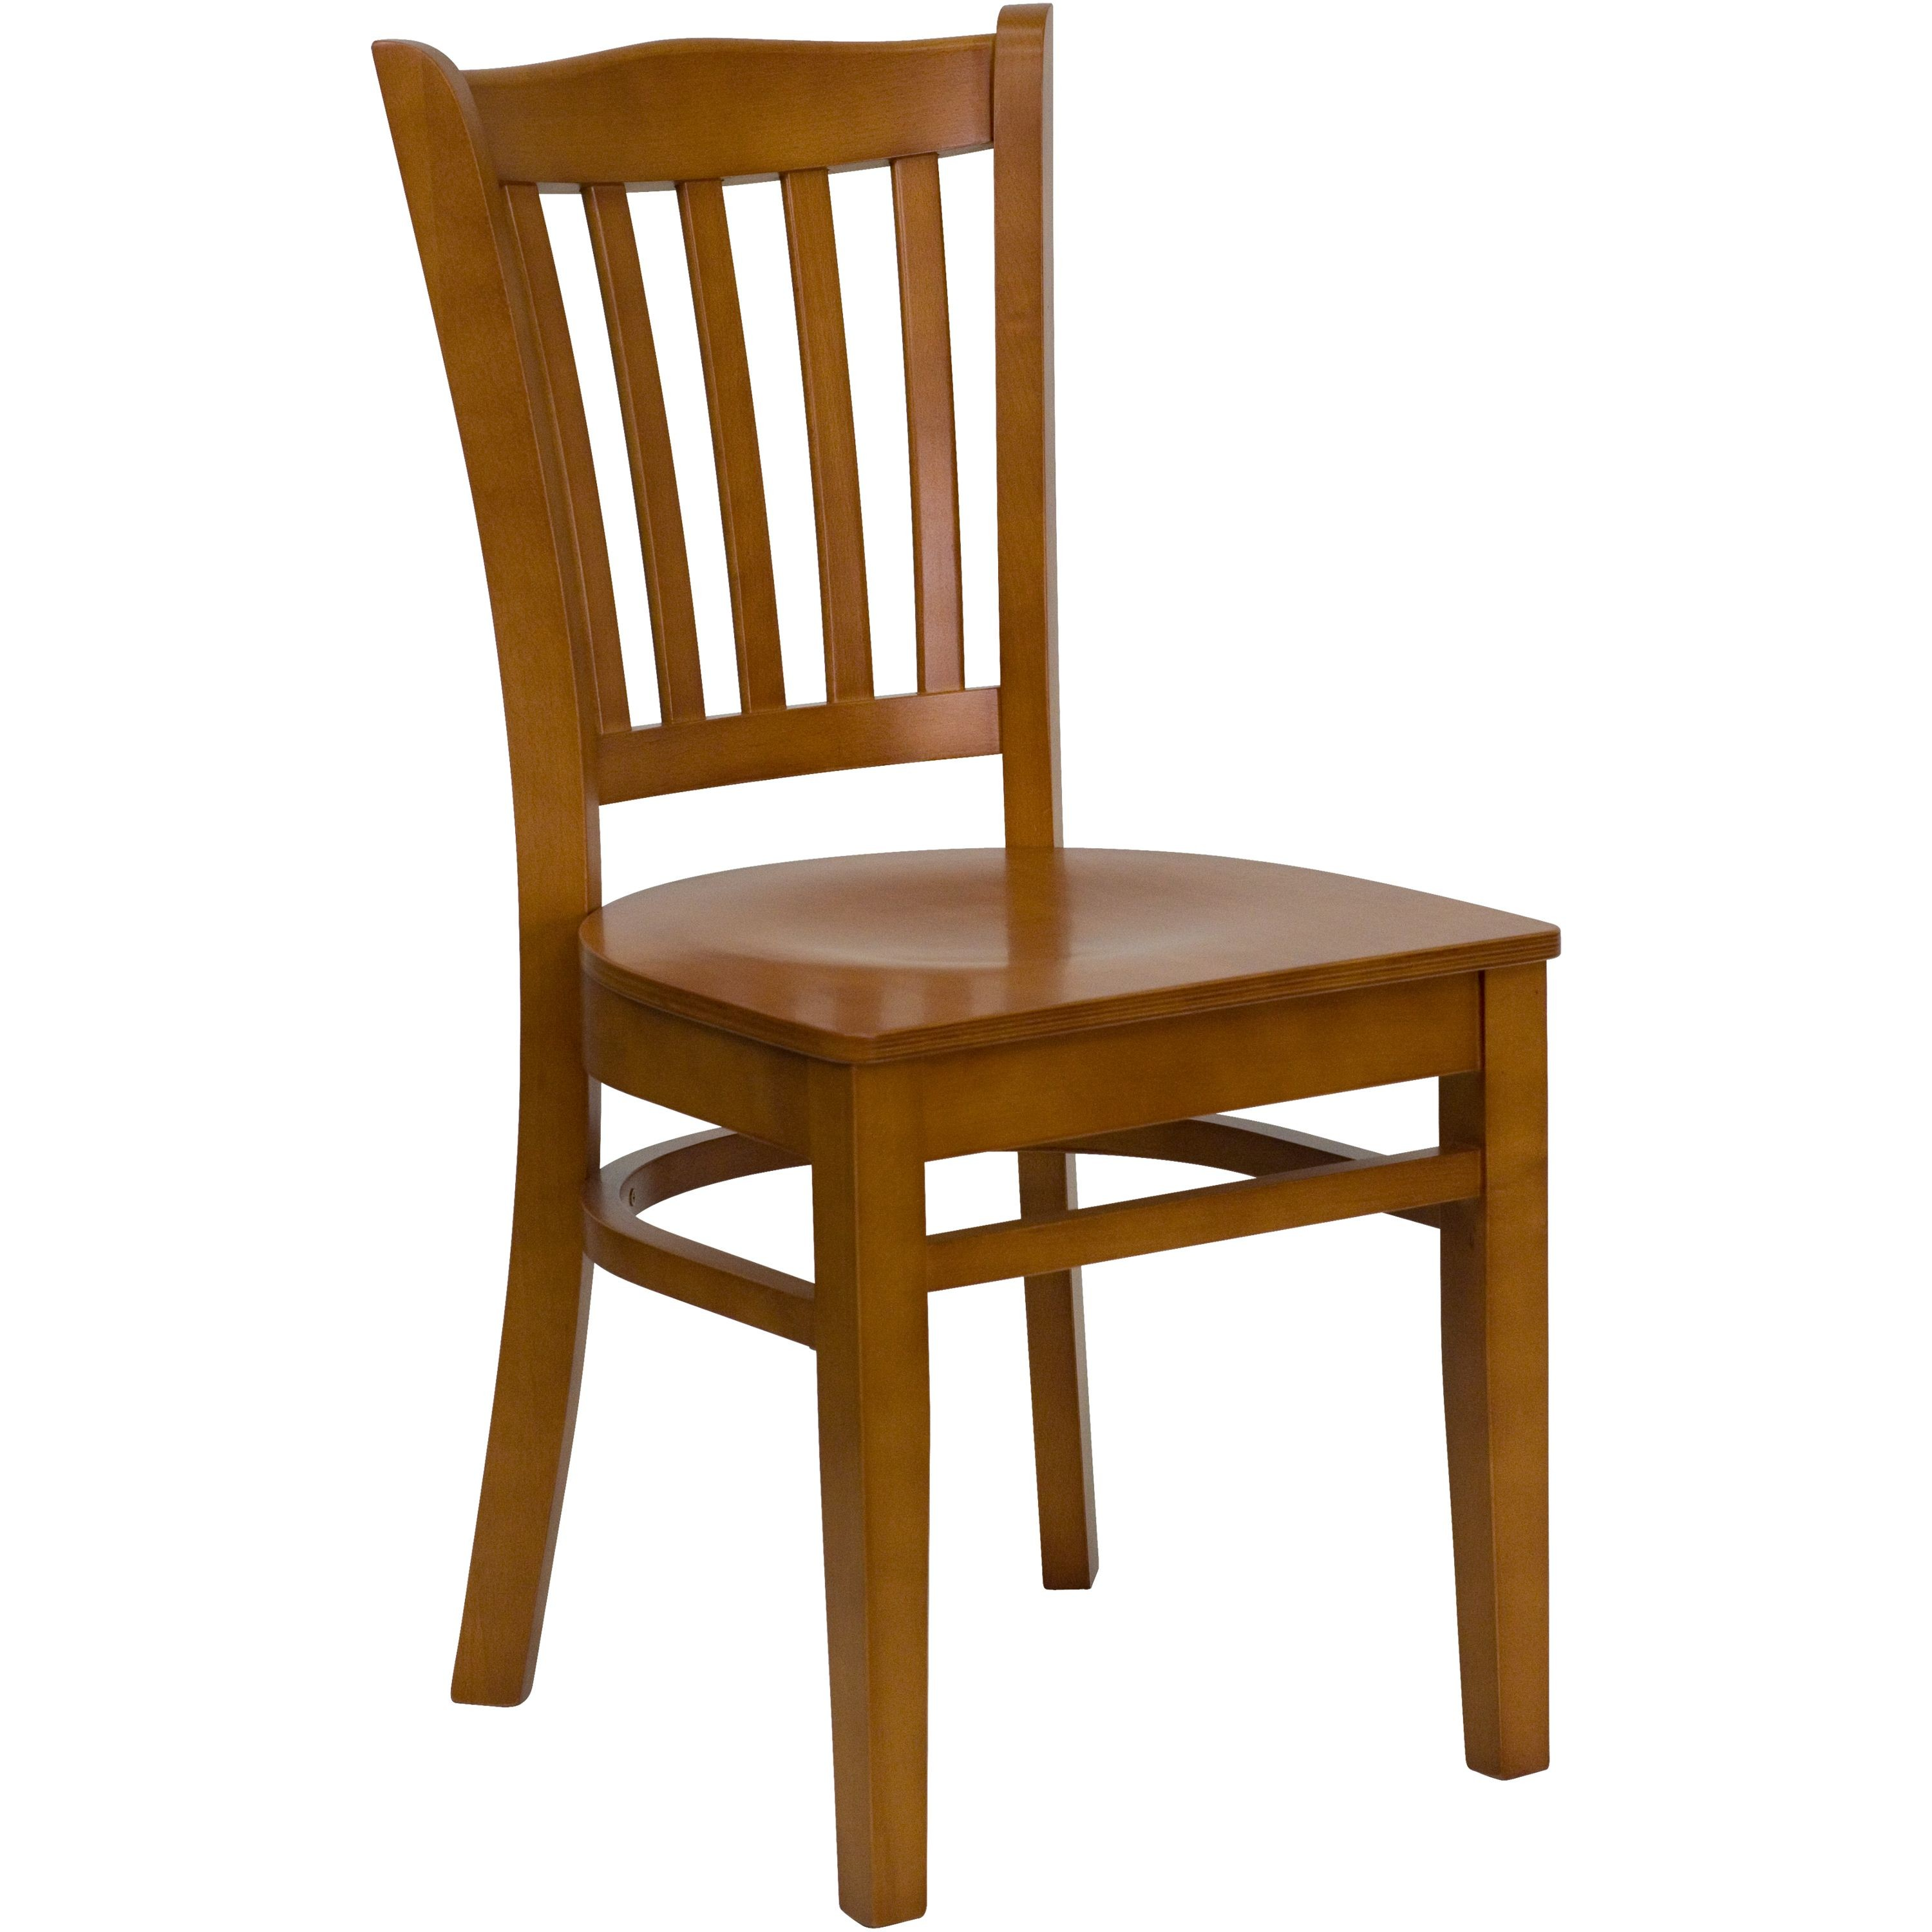 Flash Furniture XU-DGW0008VRT-CHY-GG Vertical Slat Back Wood Chair with Cherry Finish